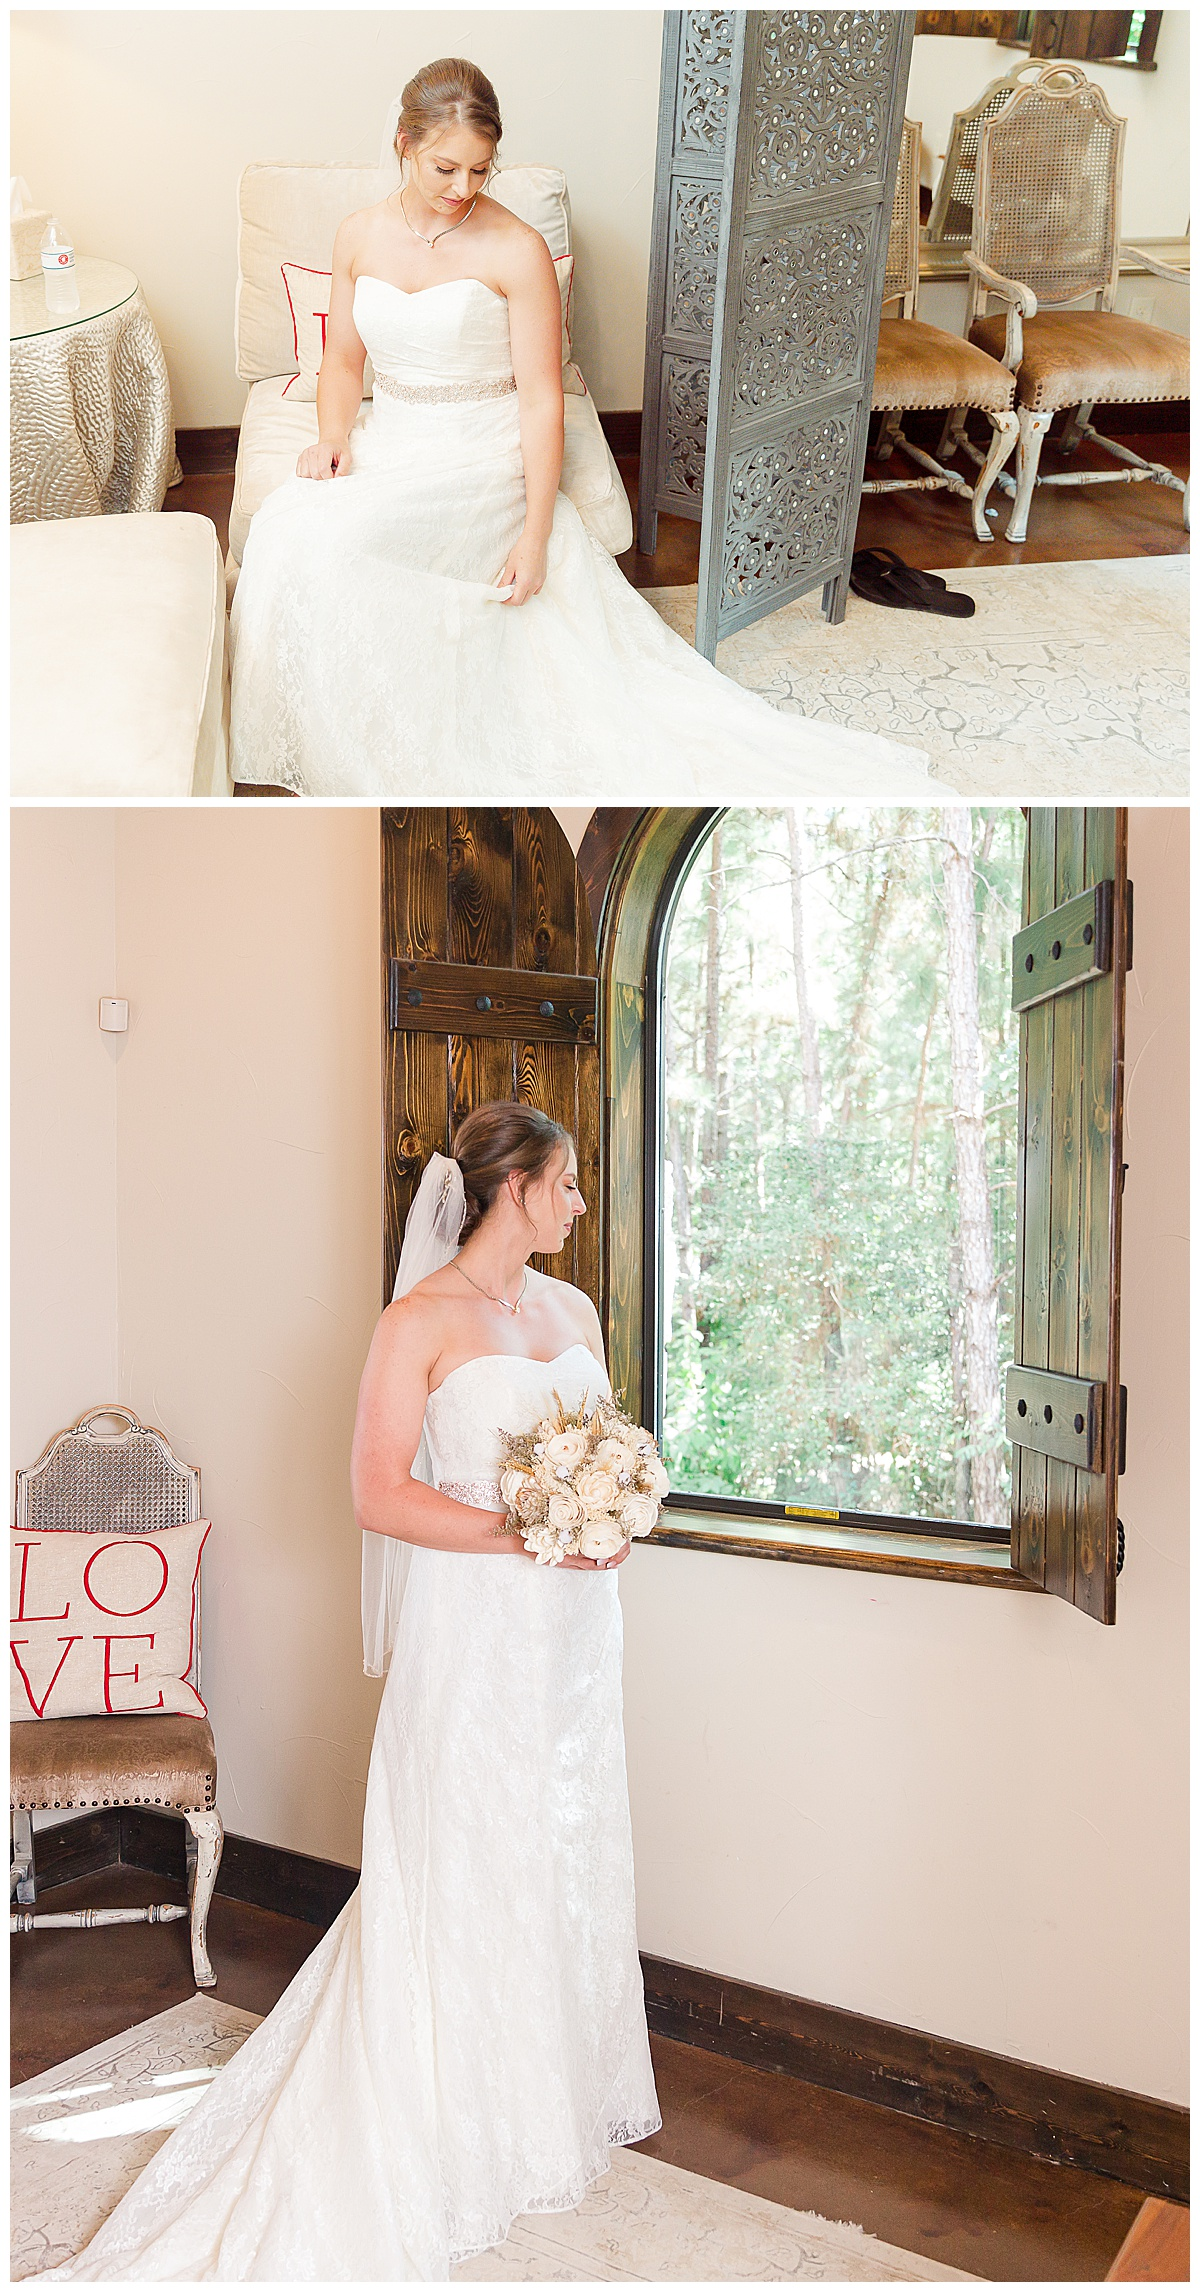 Texas-Magnolia-Bells-Rustic-Wedding-Carly-Barton-Photography_0025.jpg